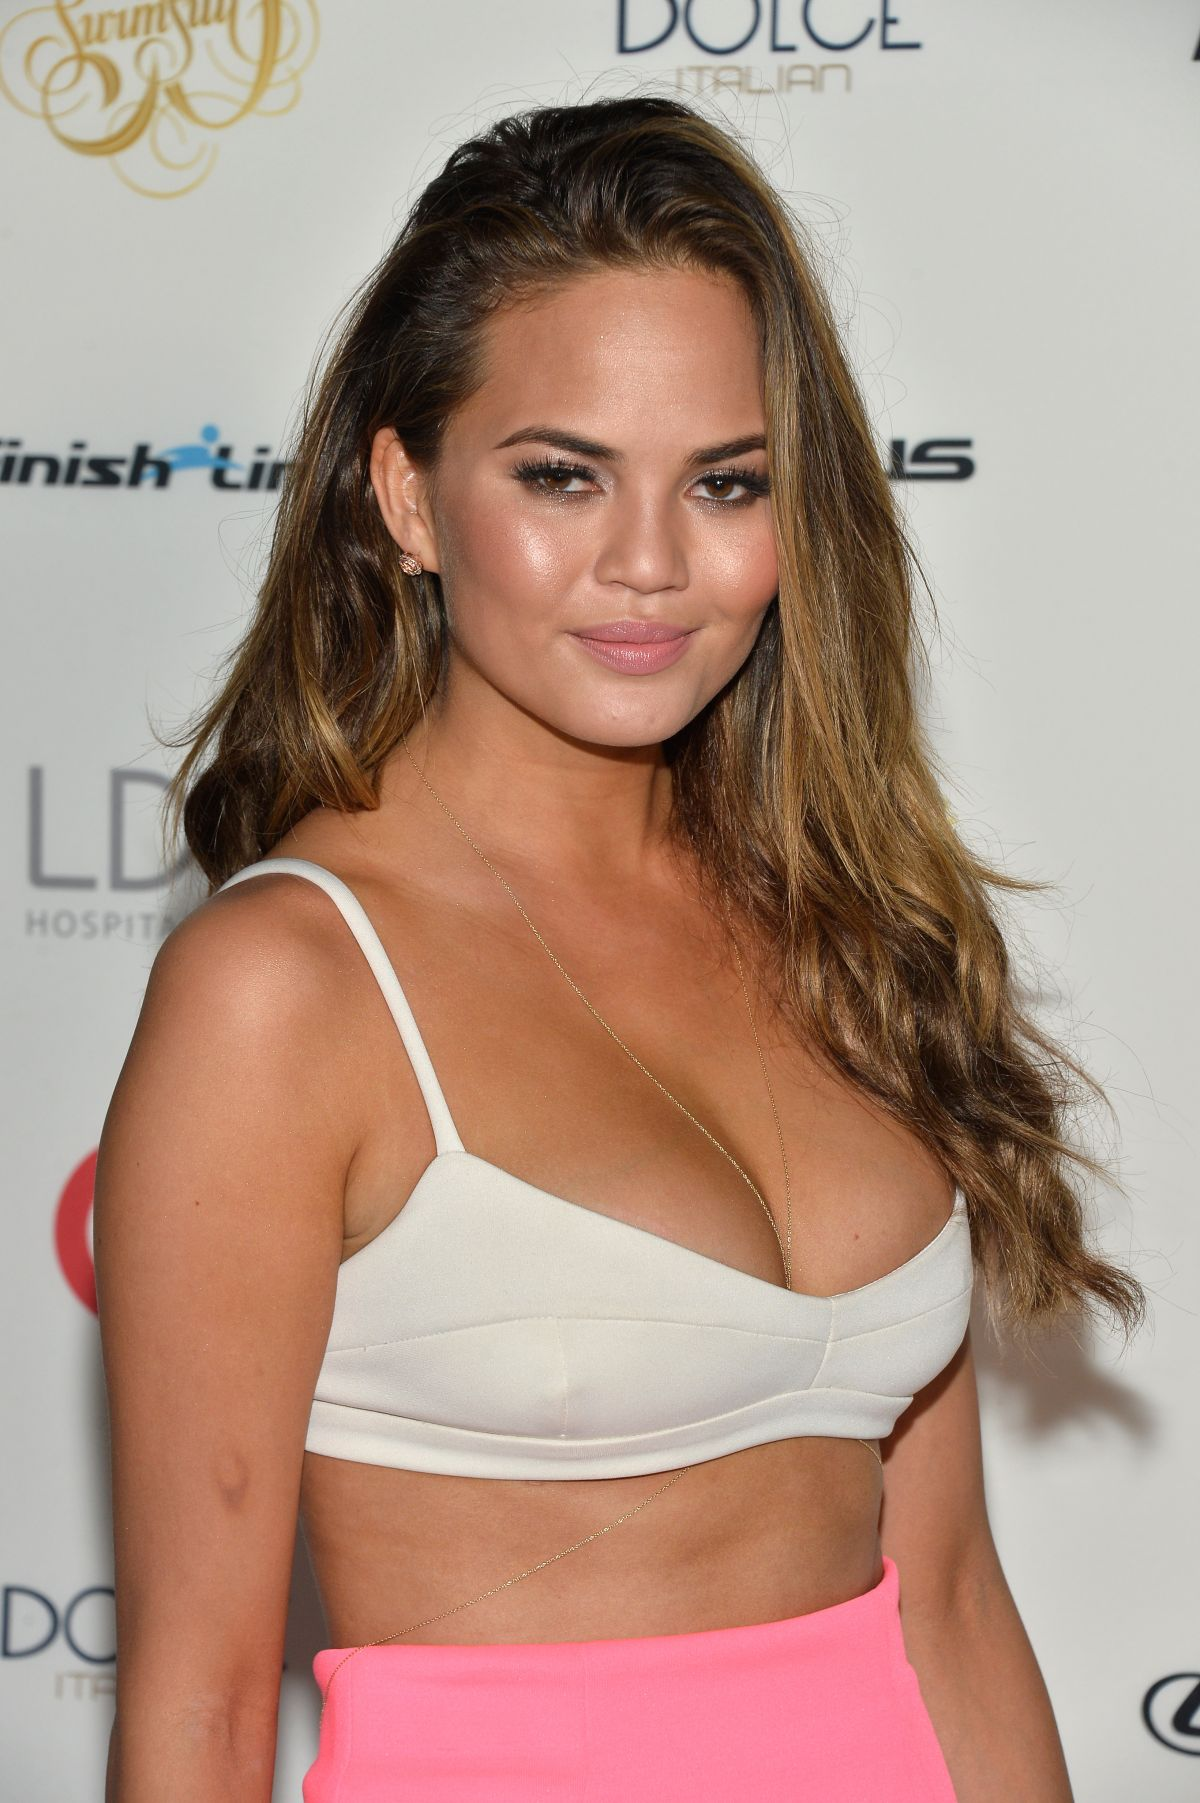 Chrissy Teigen At Sports Illustrated Swimsuit South Beach